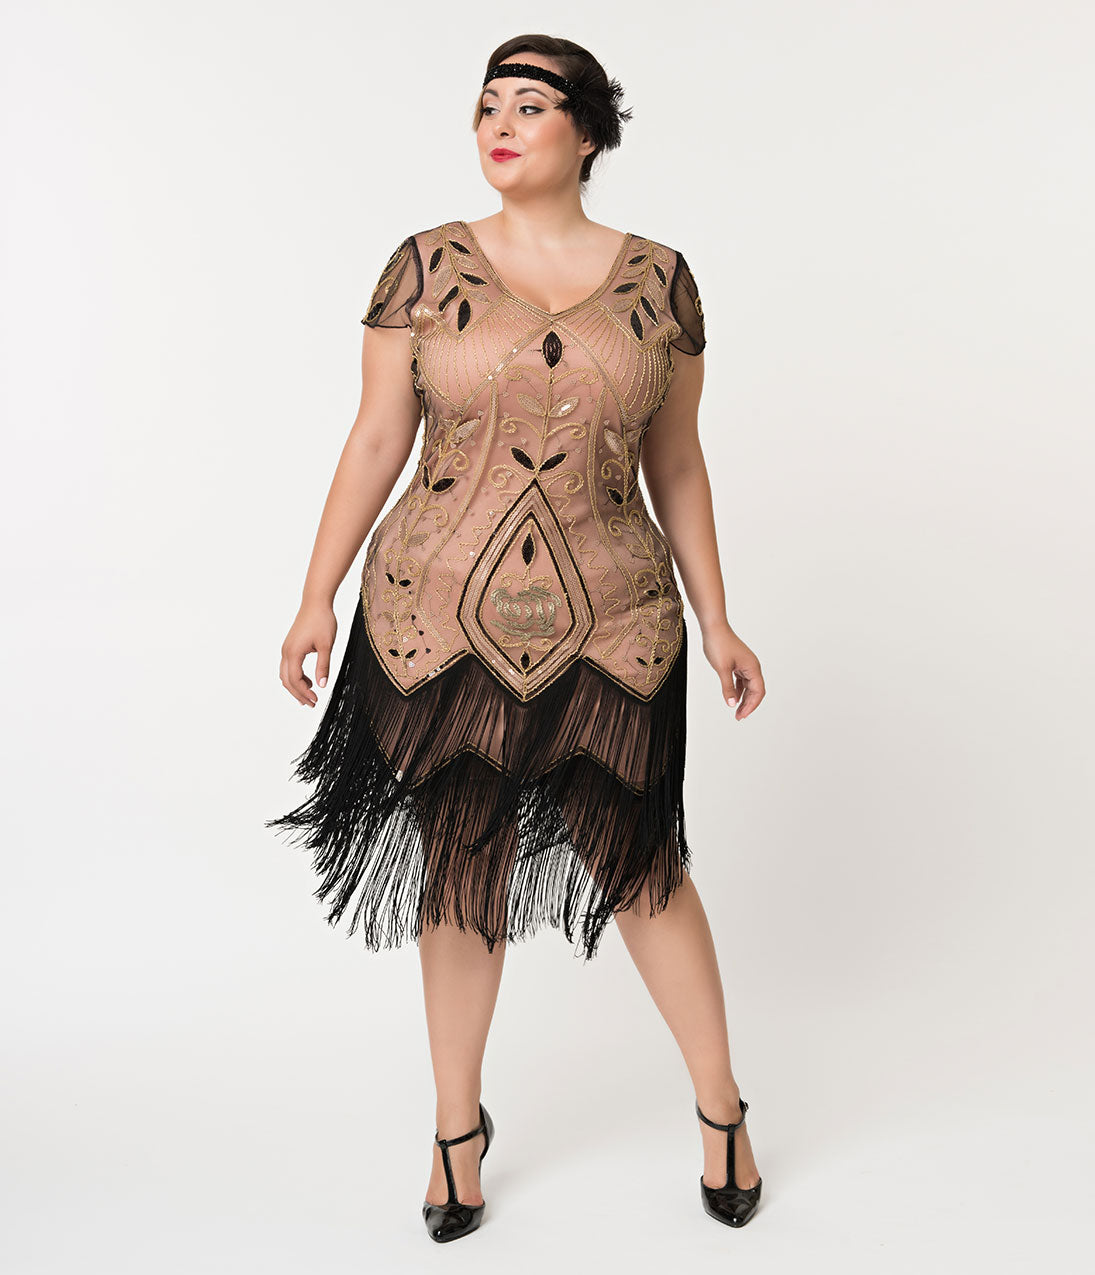 1920s Costumes: Flapper, Great Gatsby, Gangster Girl Unique Vintage Plus Size 1920S Gold Rose  Pink Noele Fringe Flapper Dress $48.00 AT vintagedancer.com